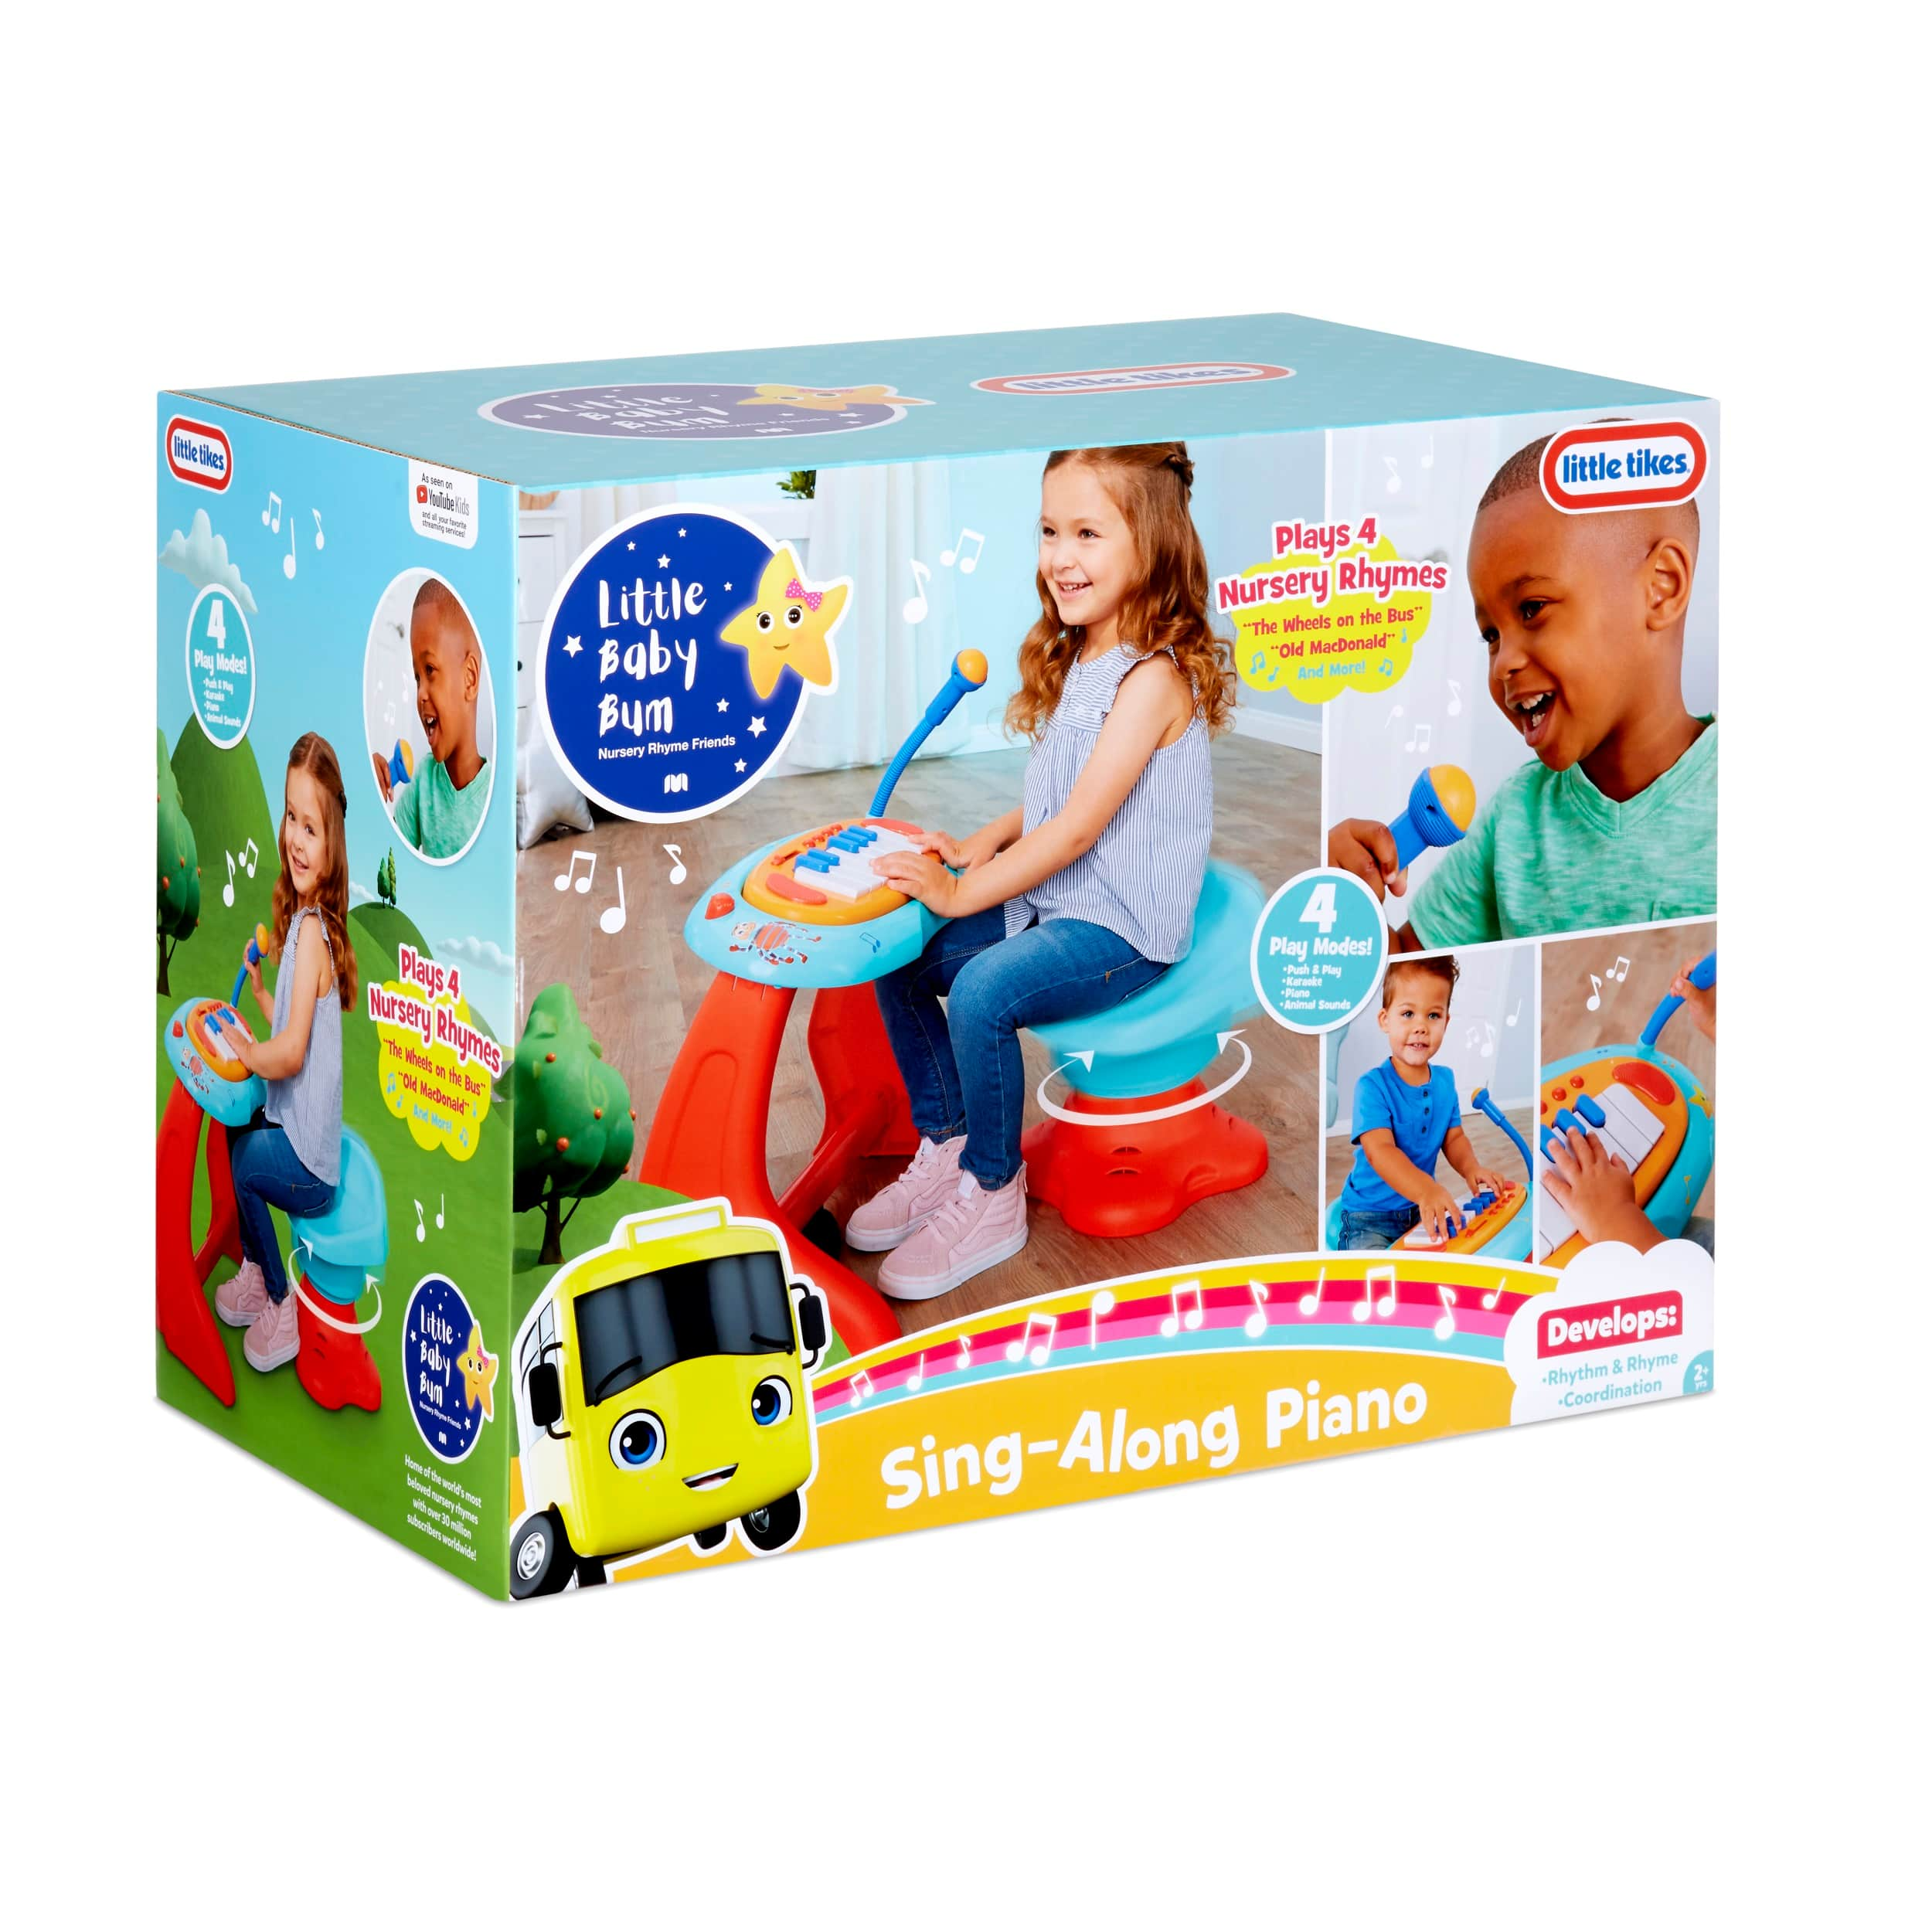 Little Tikes Little Baby Bum Sing-Along Piano $29.95 + Free Store Pickup at Walmart or Free Shipping on $35+